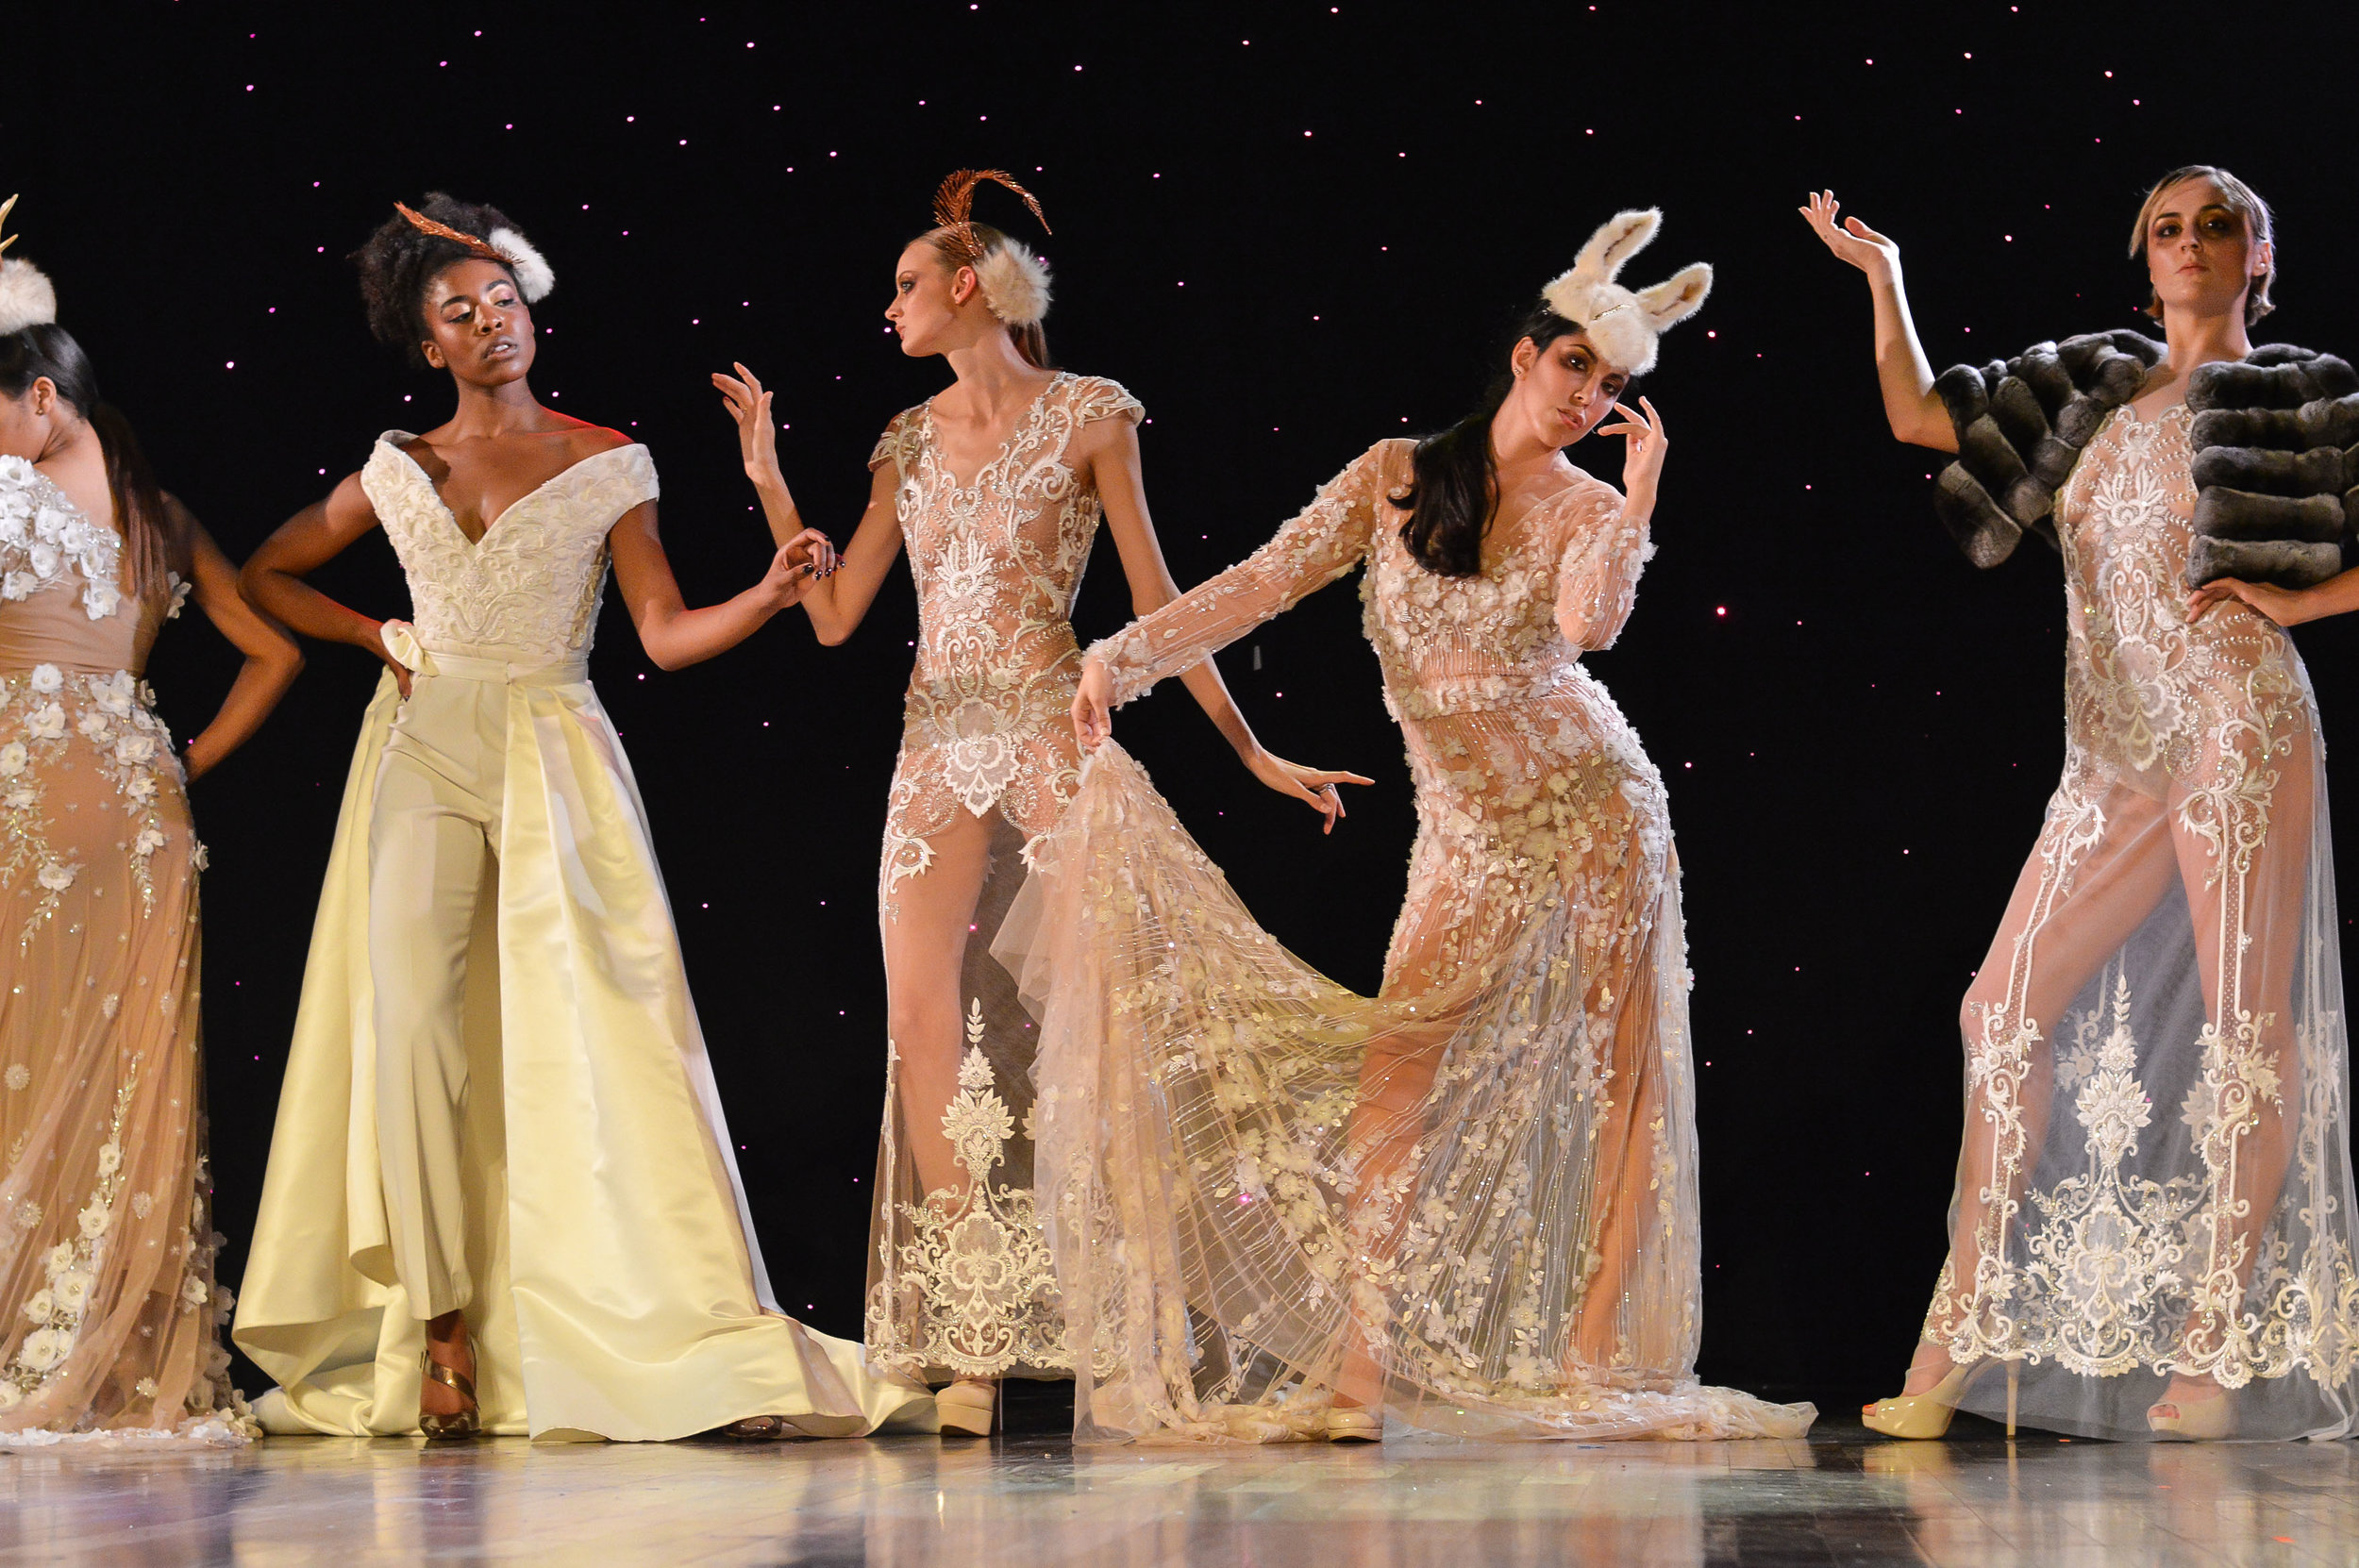 Gowns by Pedram Couture/ make up and hats by midori tajiri byrd/ photography: Mike D. Photography